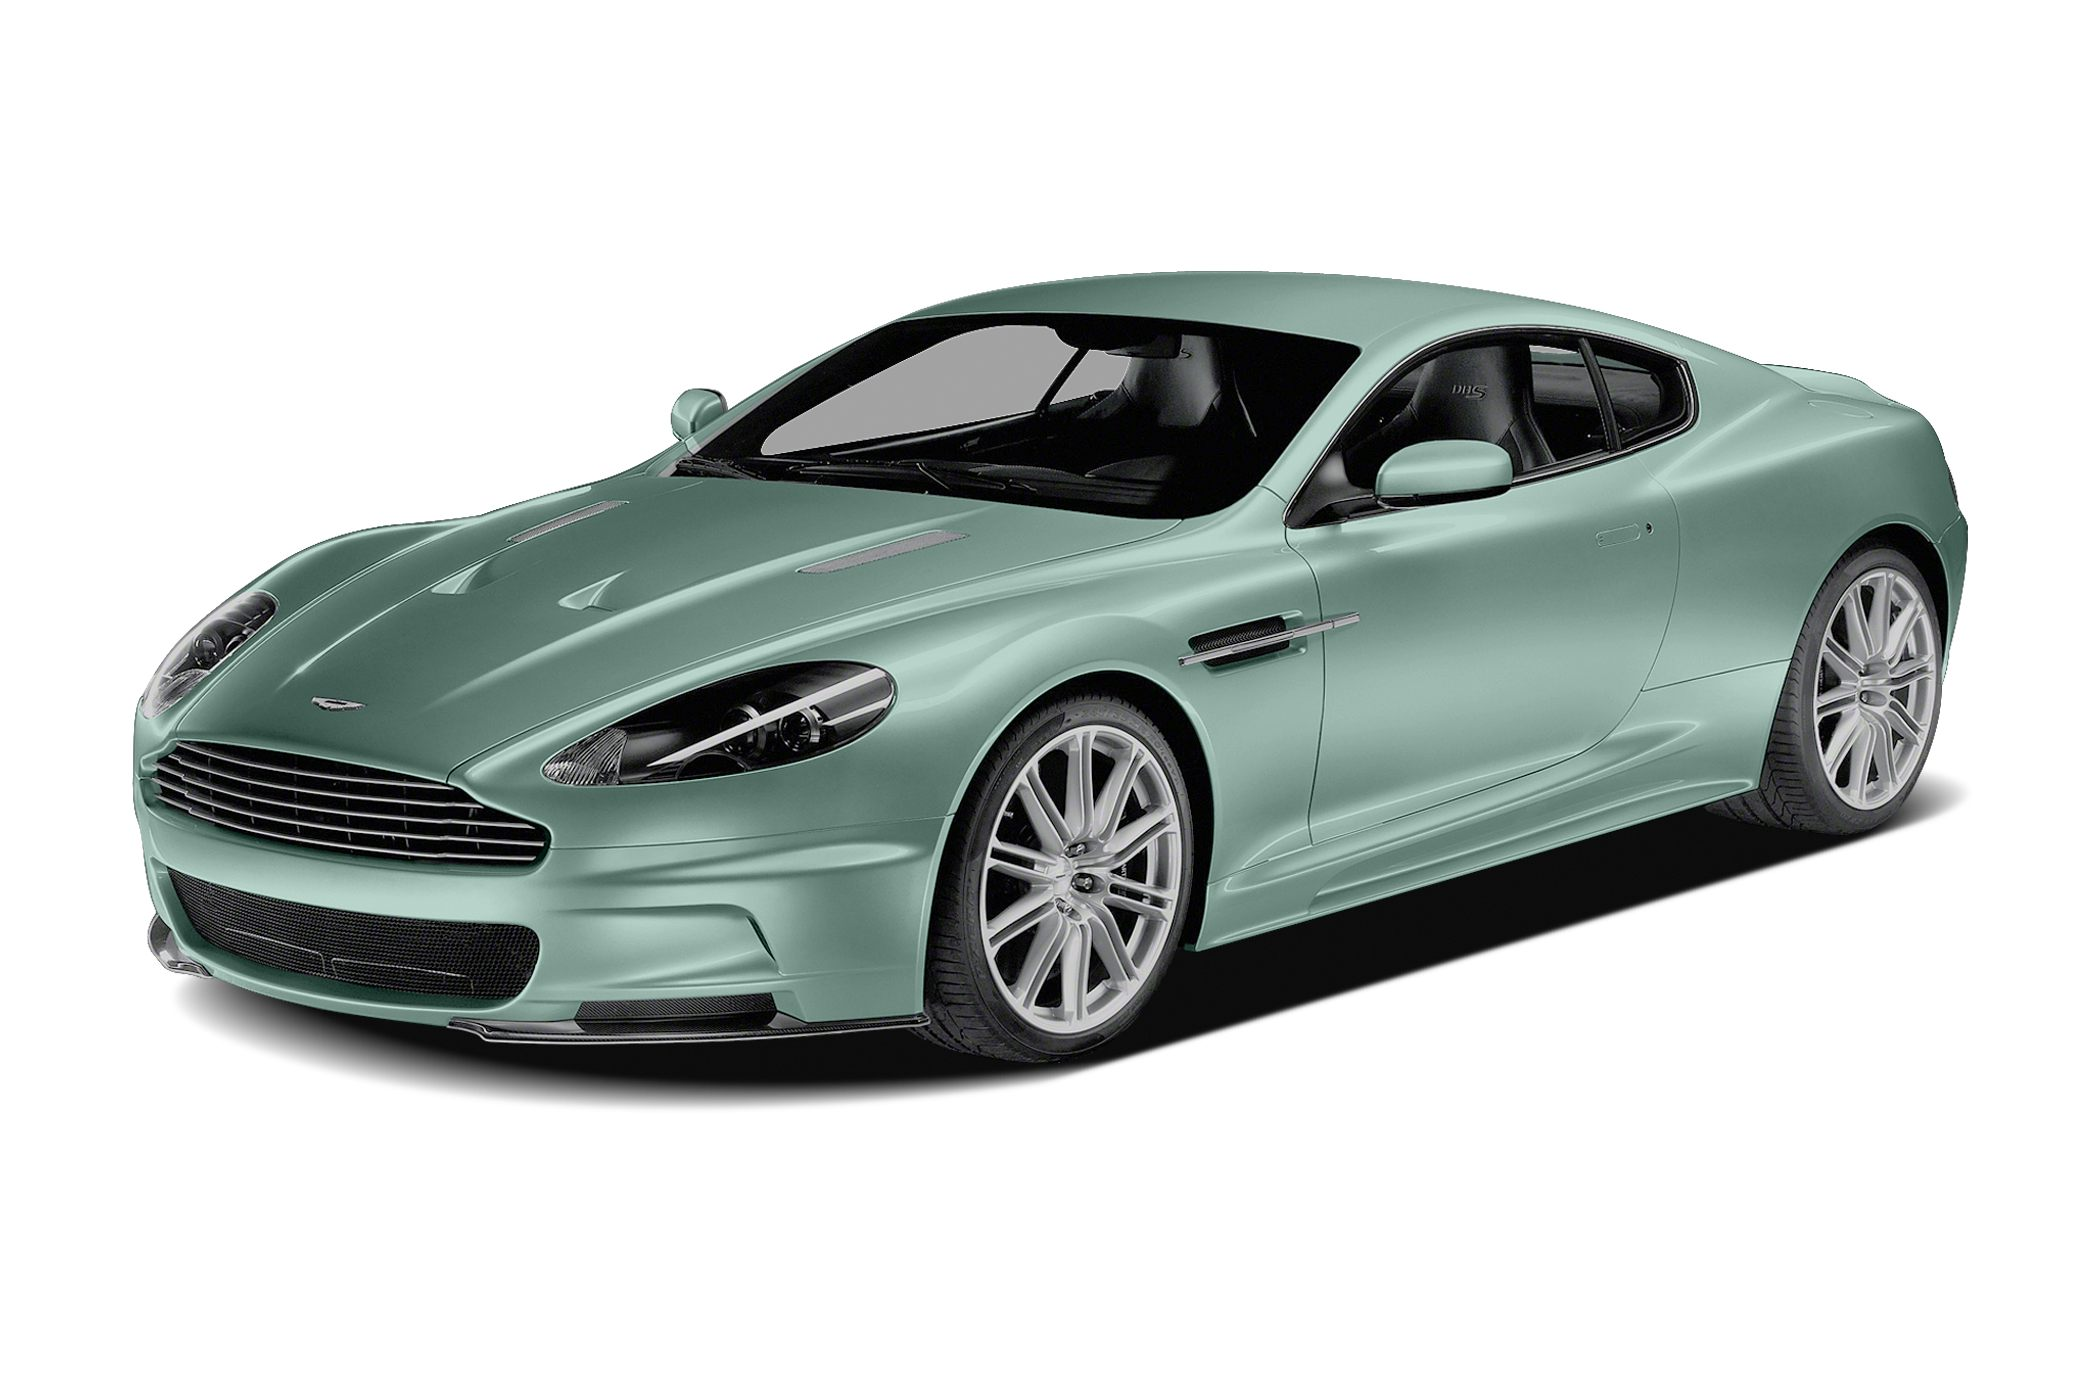 aston martin dbs news photos and buying information autoblog. Black Bedroom Furniture Sets. Home Design Ideas